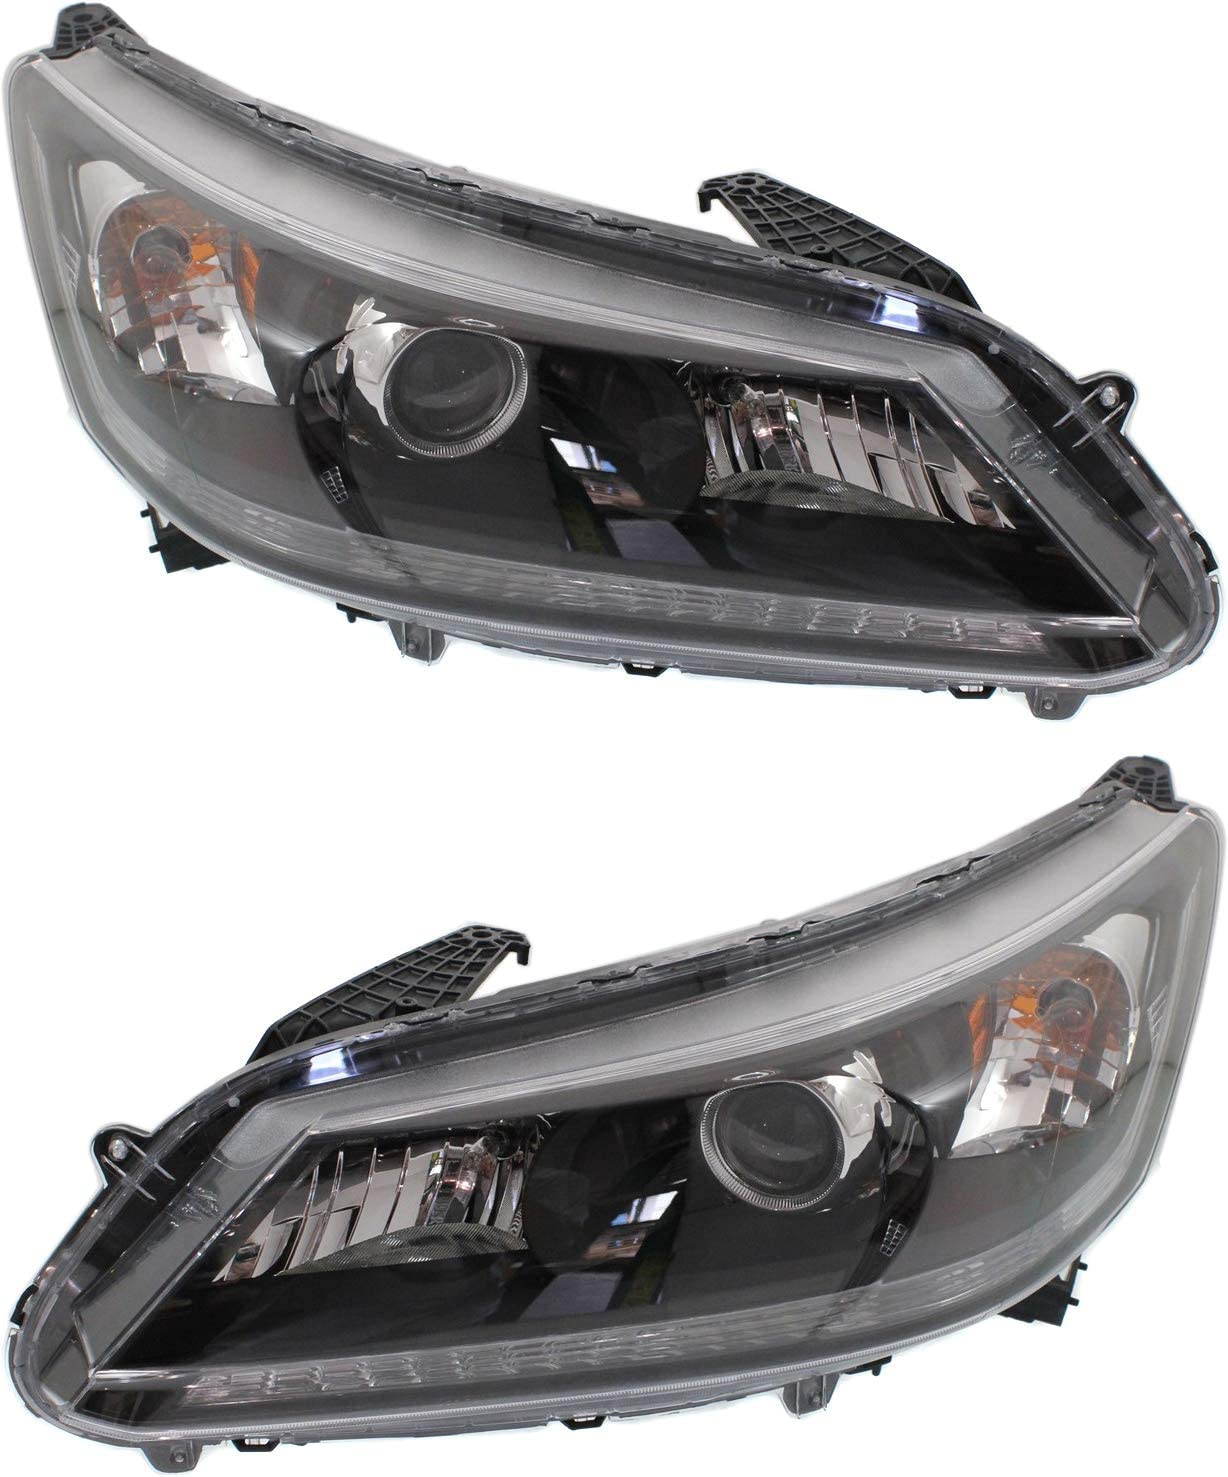 Headlight Assembly Compatible with 2013-2015 Honda Accord Halogen 4Cyl EX/EX-L/LX/Sport Models Sedan Passenger and Driver Side